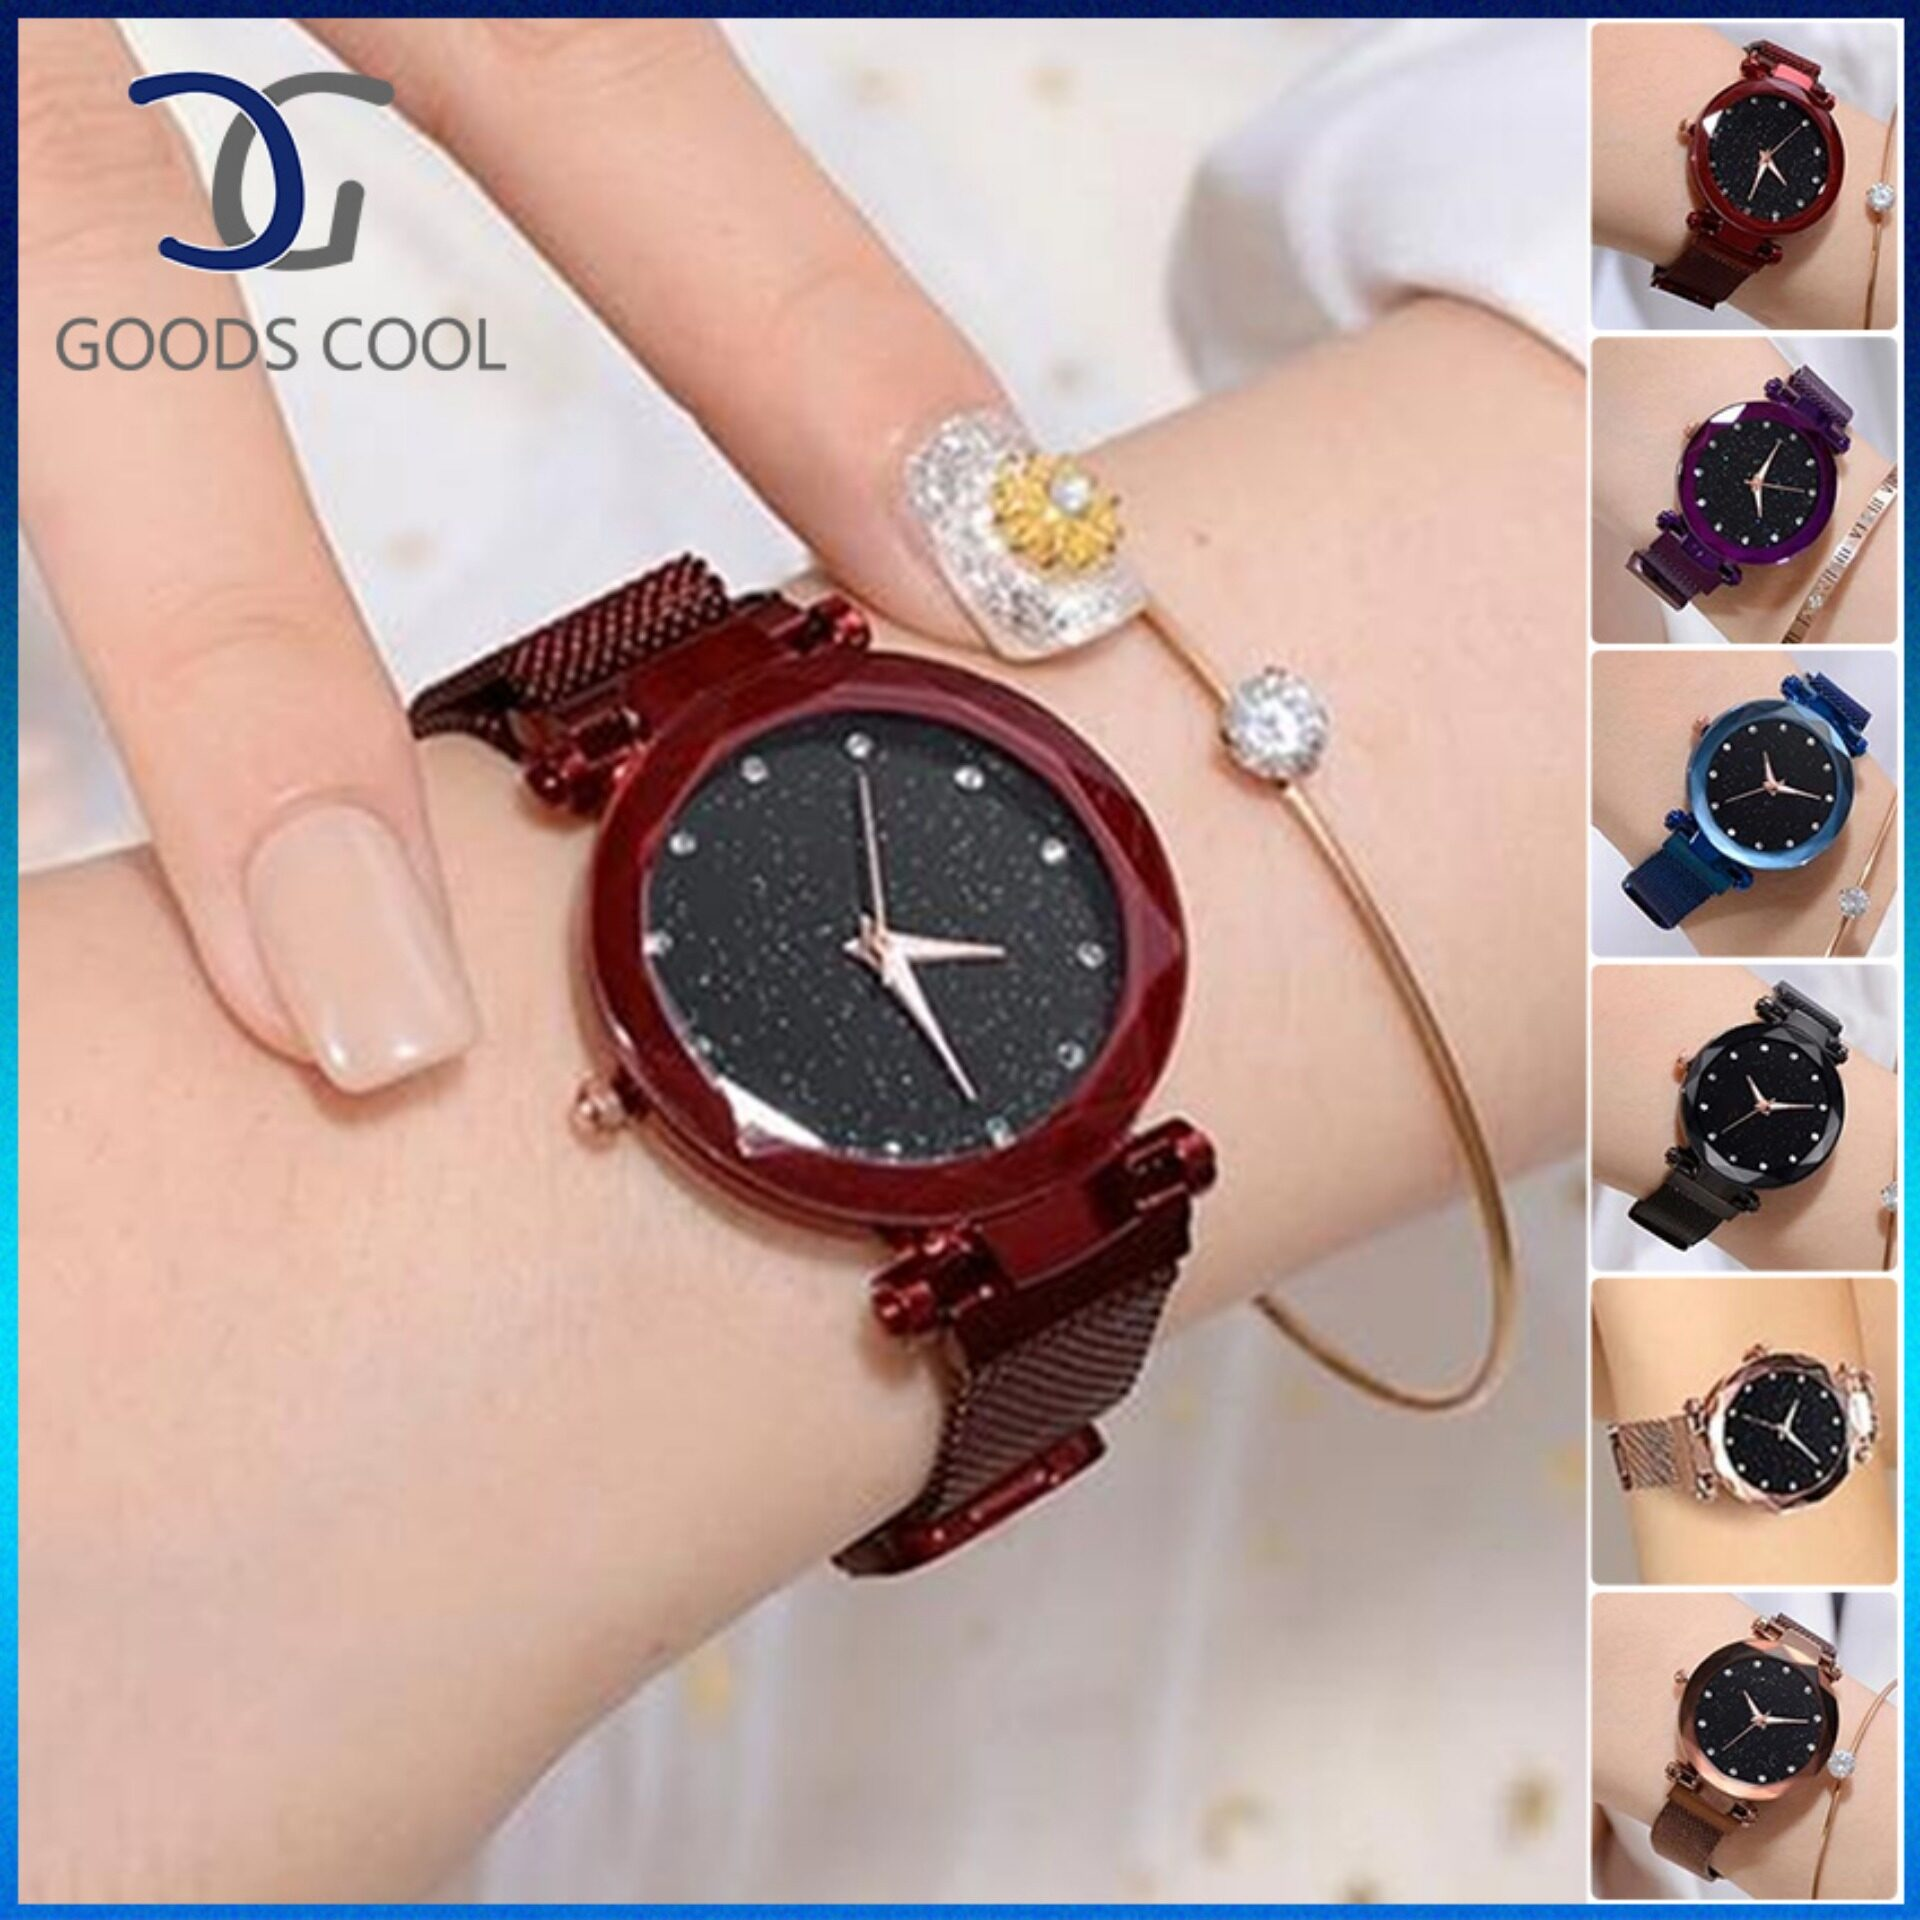 GoodScool Waterproof Starry Sky Quartz Watch For WomenFashion Casual Stainless Steel Ladies Watch with Magnet Strap BuckleGift Women Watch with Magnet Milan Mesh Belt Malaysia